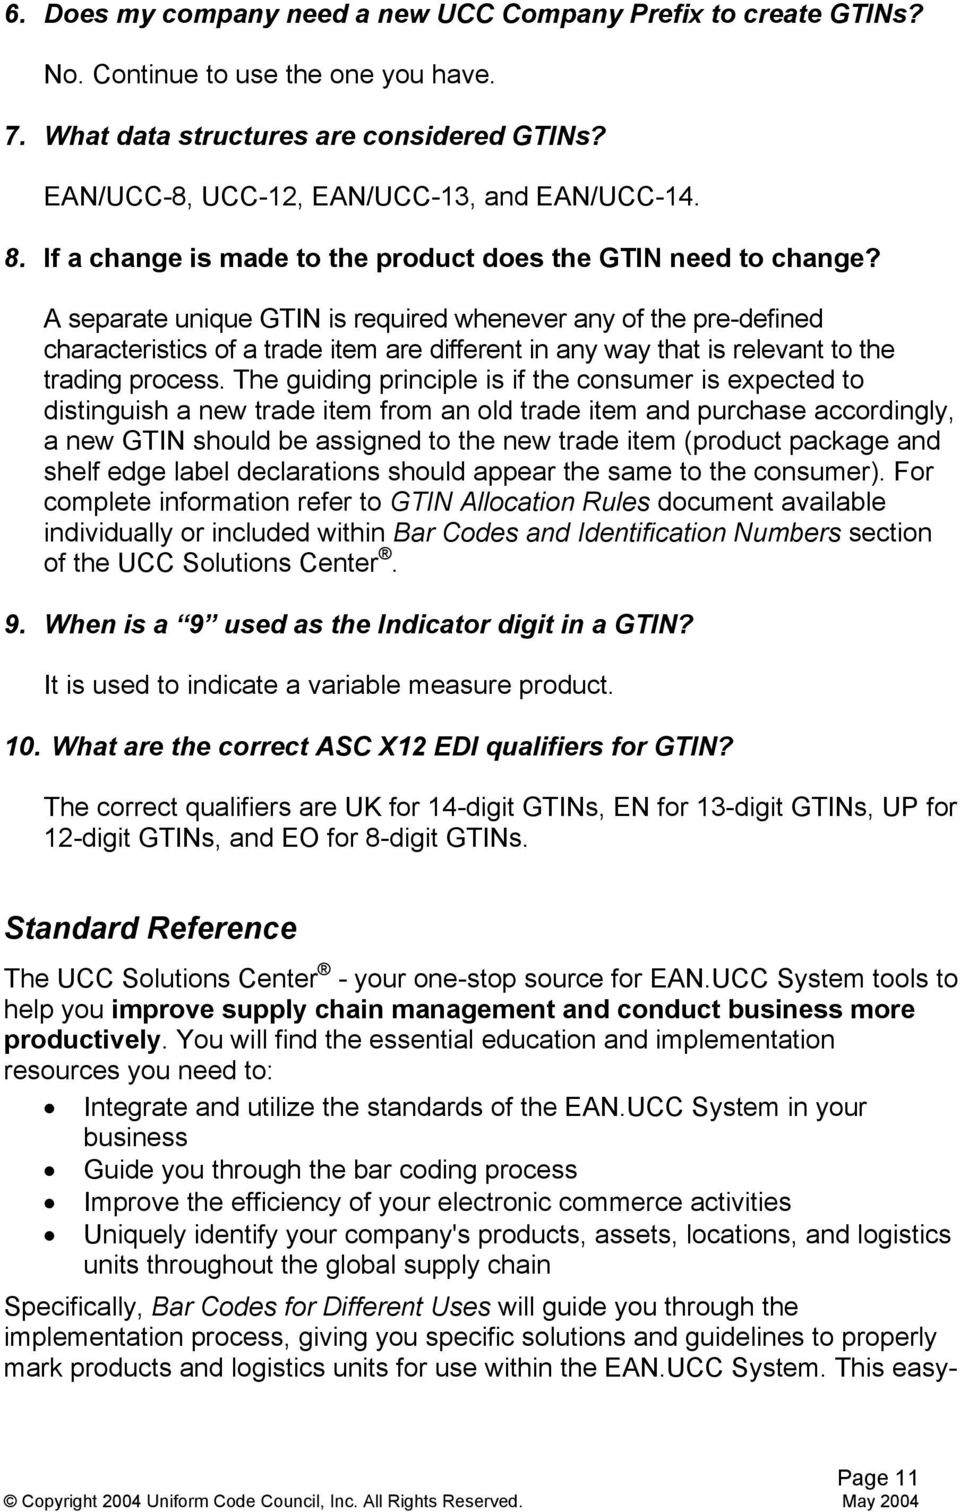 A separate unique GTIN is required whenever any of the pre-defined characteristics of a trade item are different in any way that is relevant to the trading process.